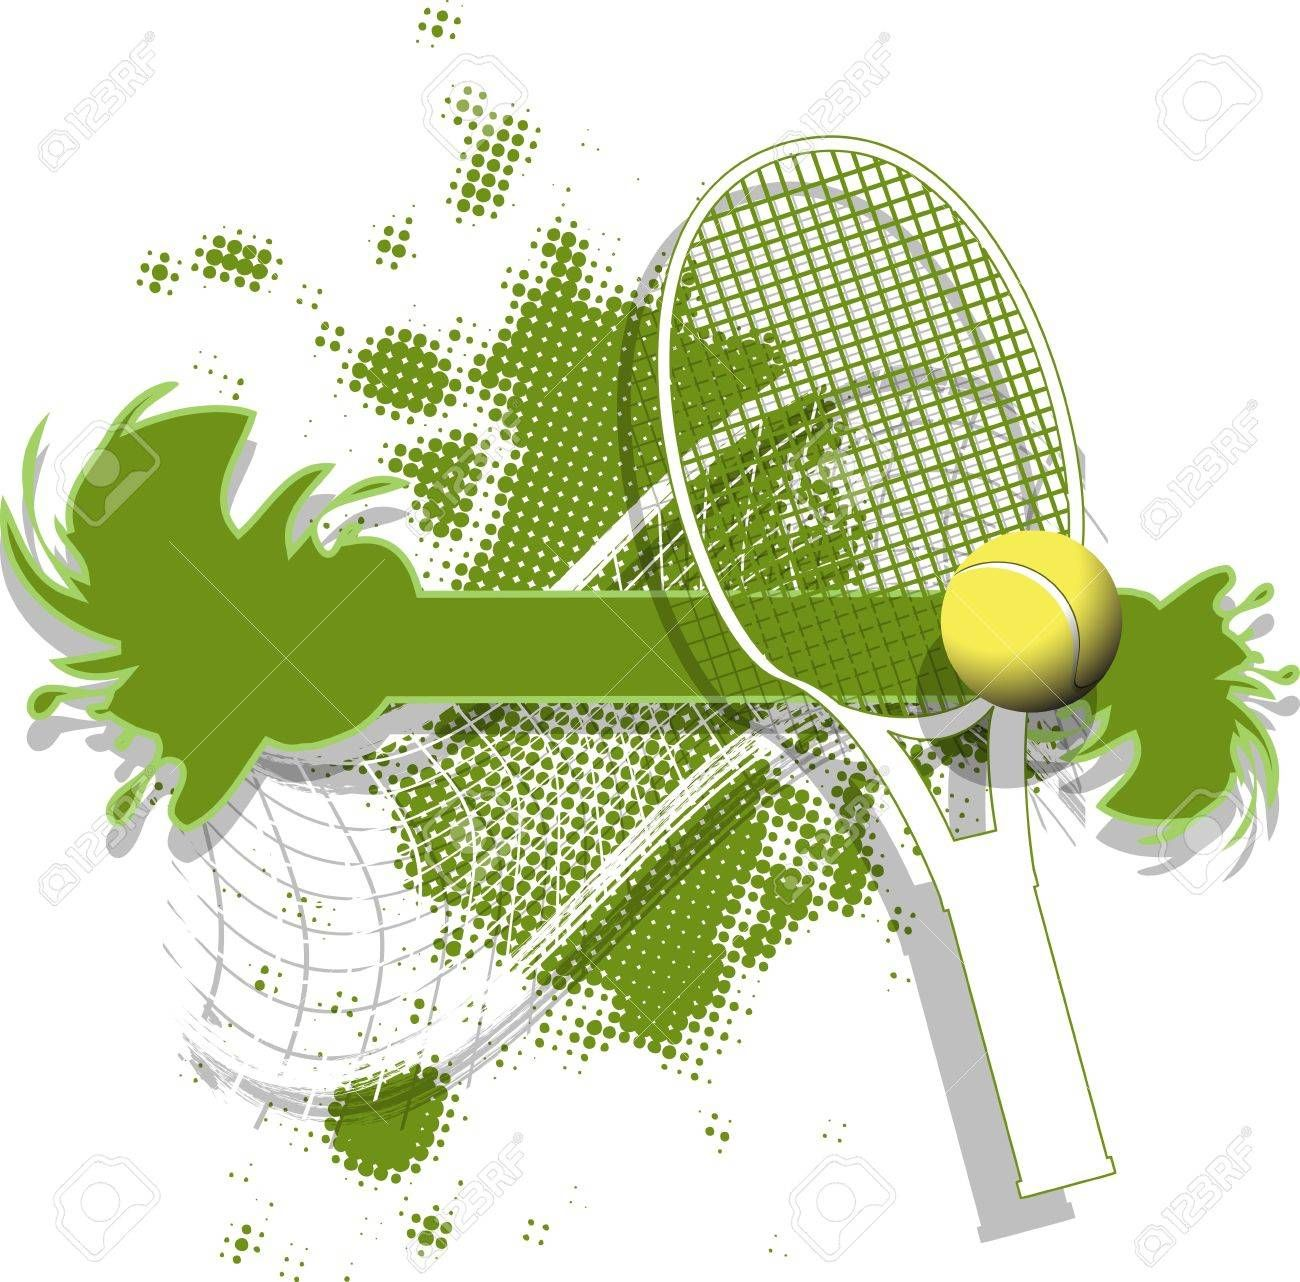 Tennis Ball On Transparent Background Tennis Ball Ball Transparent Background